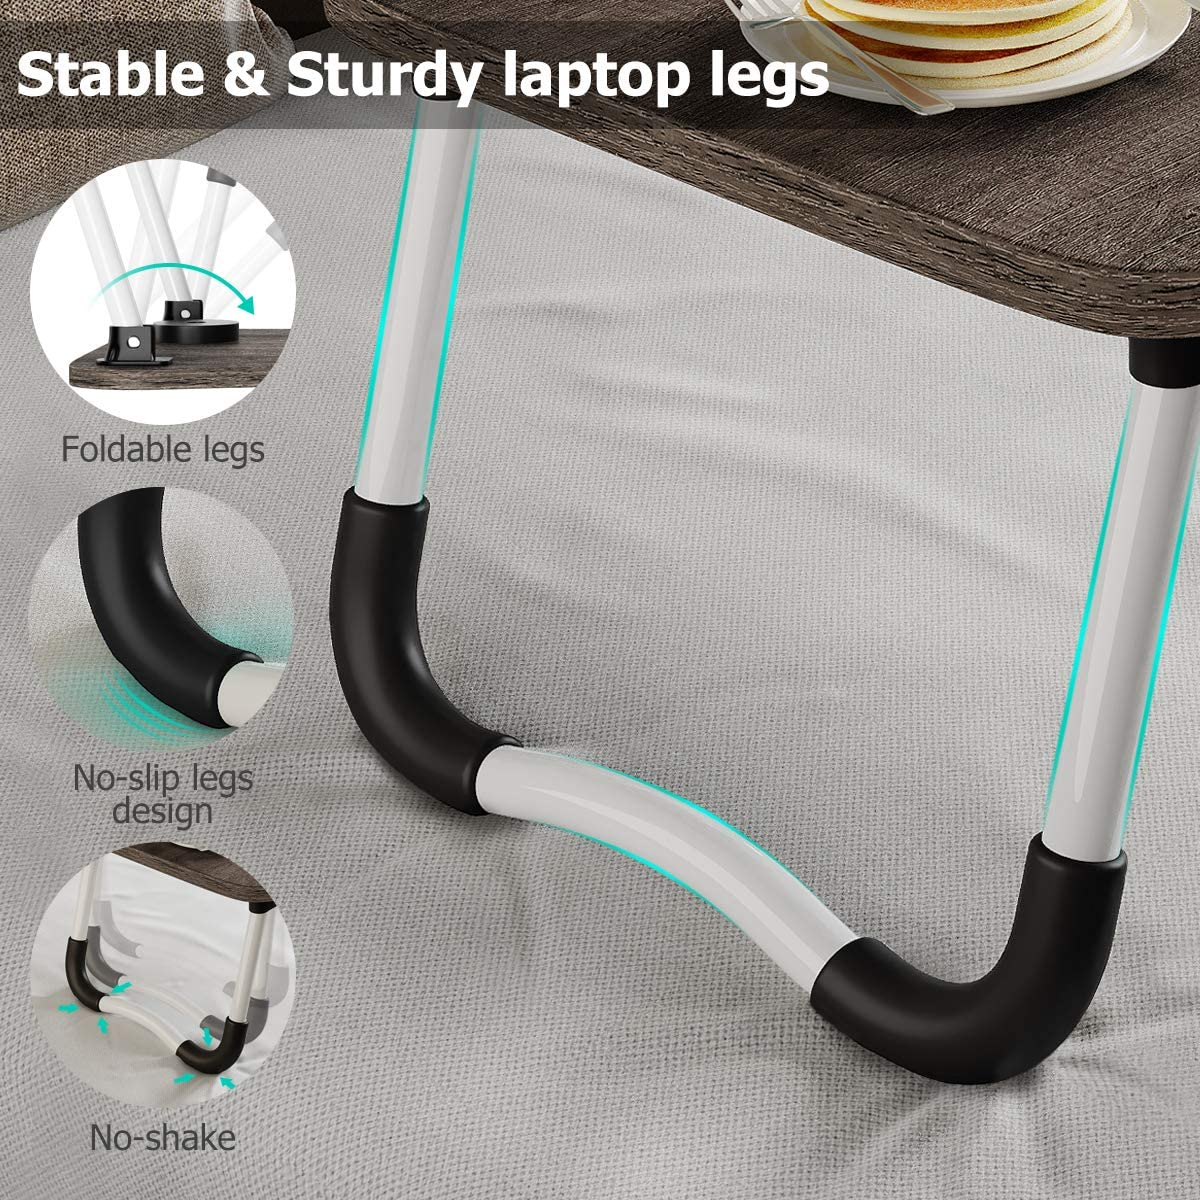 Laptop Stand for Bed, Portable Laptop Desk Tray Table with Foldable Legs for Bed Couch Sofa